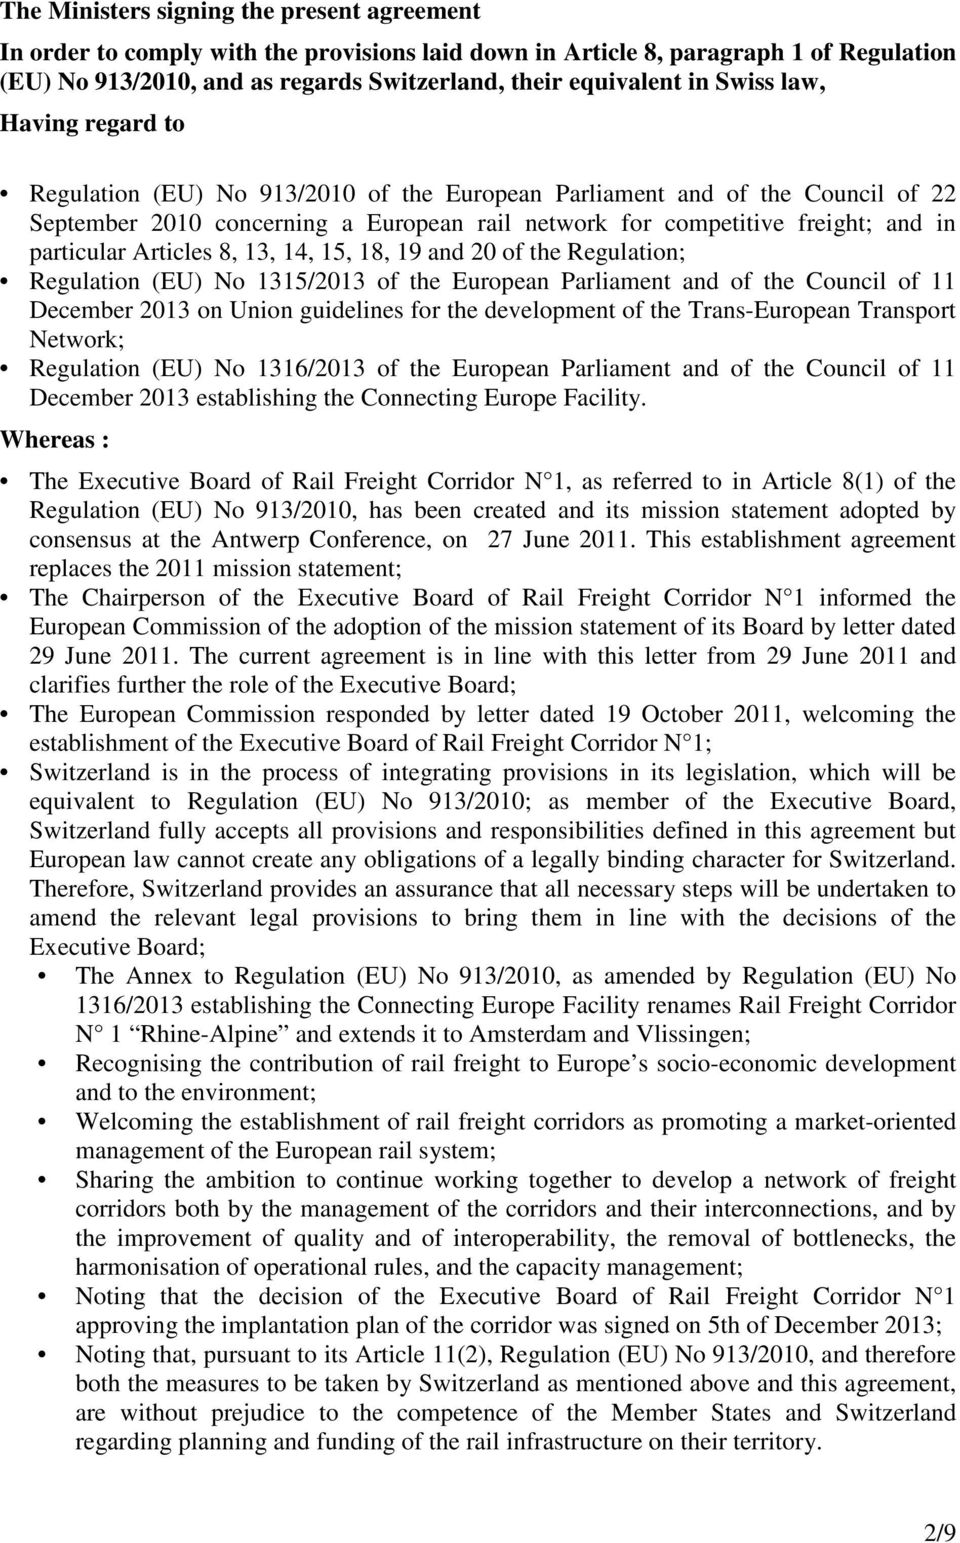 particular Articles 8, 13, 14, 15, 18, 19 and 20 of the Regulation; Regulation (EU) No 1315/2013 of the European Parliament and of the Council of 11 December 2013 on Union guidelines for the